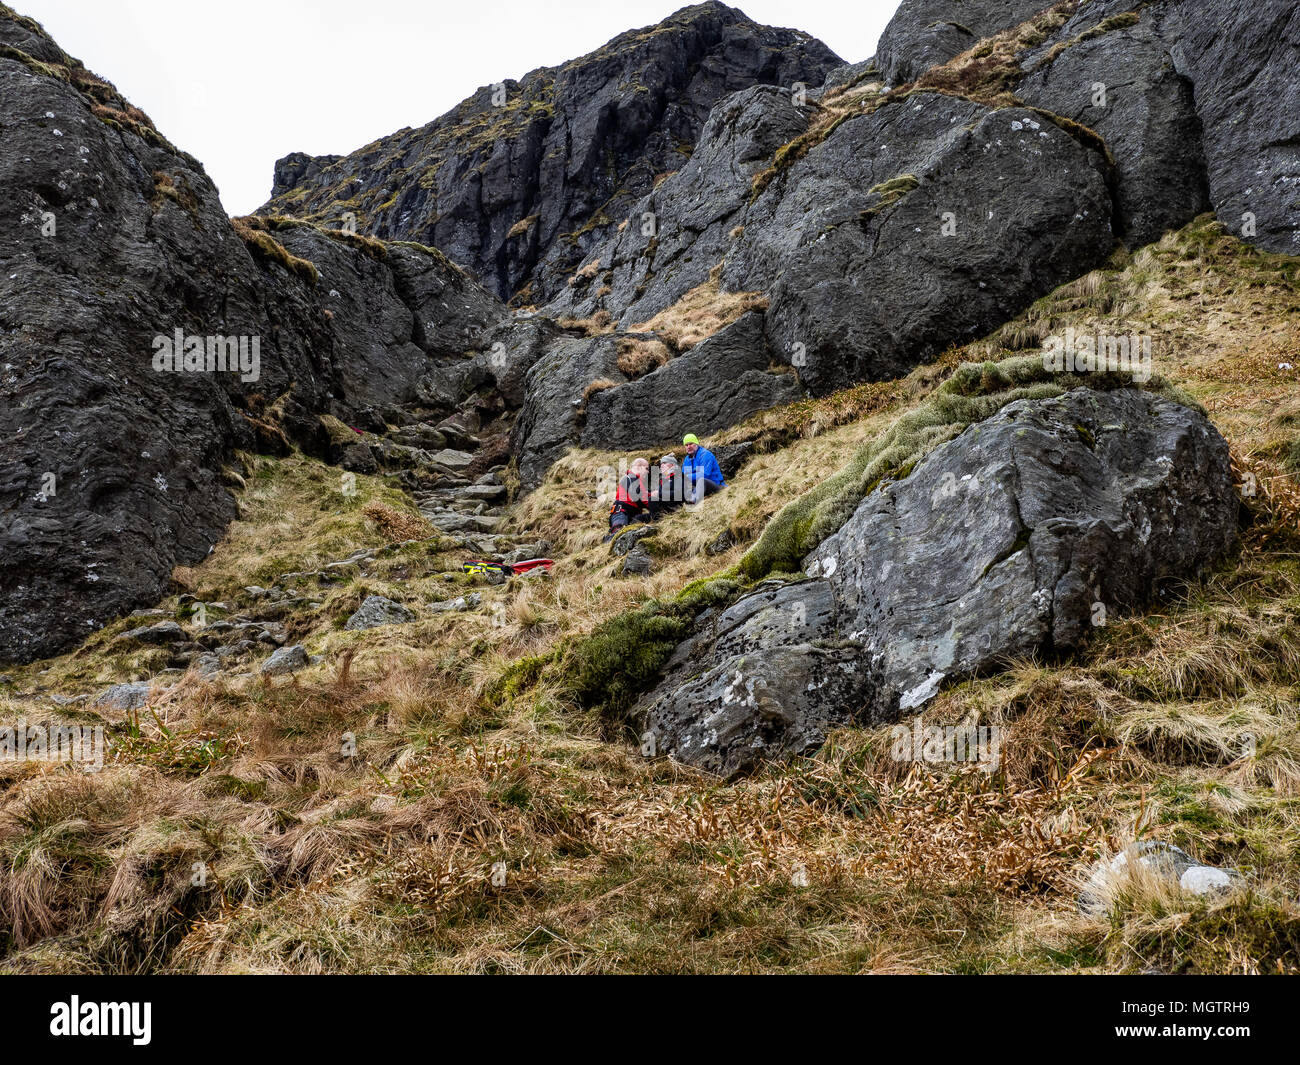 Ben Arthur, The Cobbler, Scotland 29th April 2018. A coastguard helicopter dropping off mountain rescue team members to help an injured walker who was later carried off the hill. Credit: george robertson/Alamy Live News - Stock Image